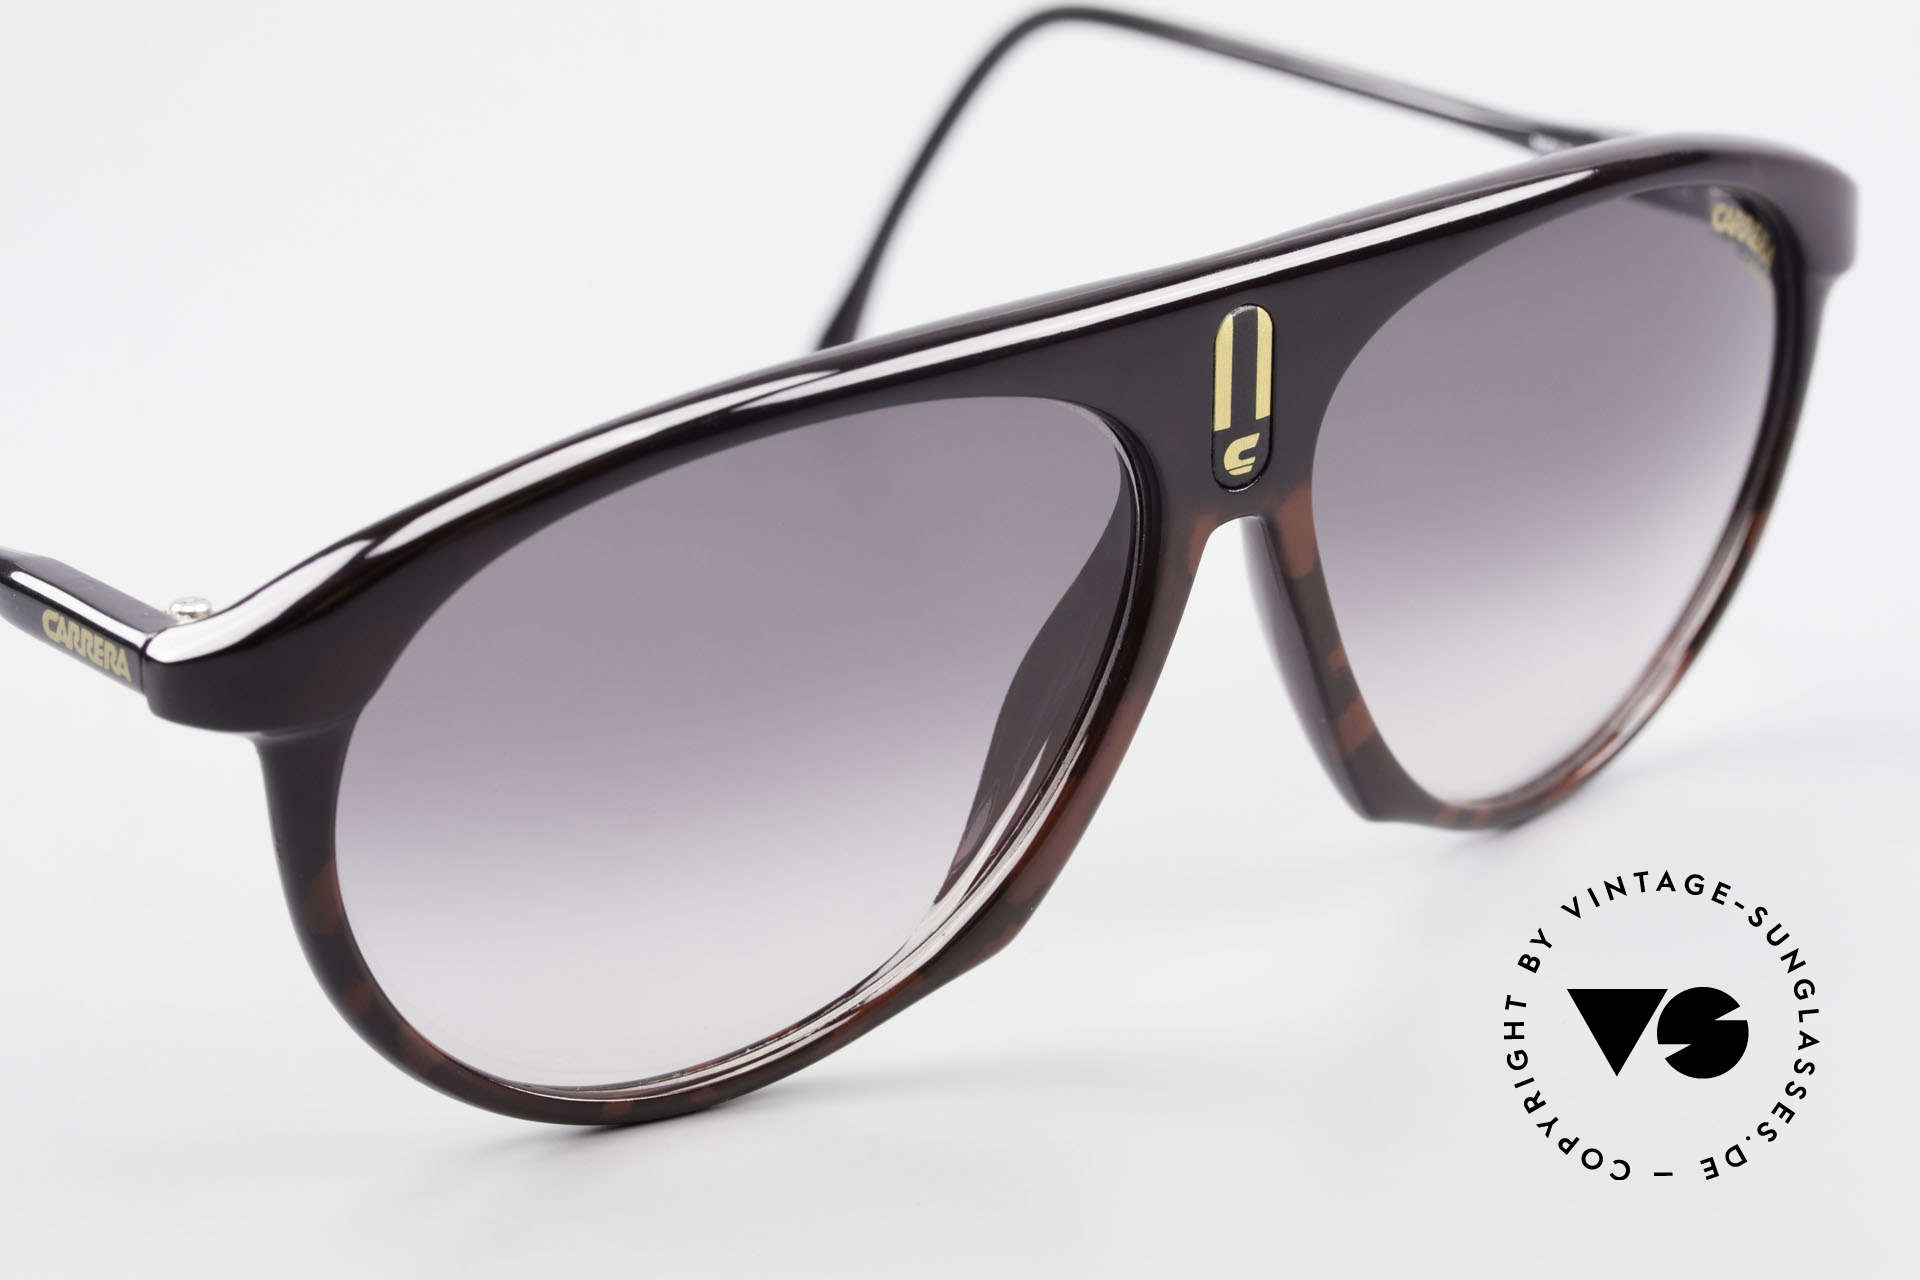 Carrera 5427 Sports Sunglasses 80's Unisex, very interesting frame pattern in bordeaux-black, Made for Men and Women